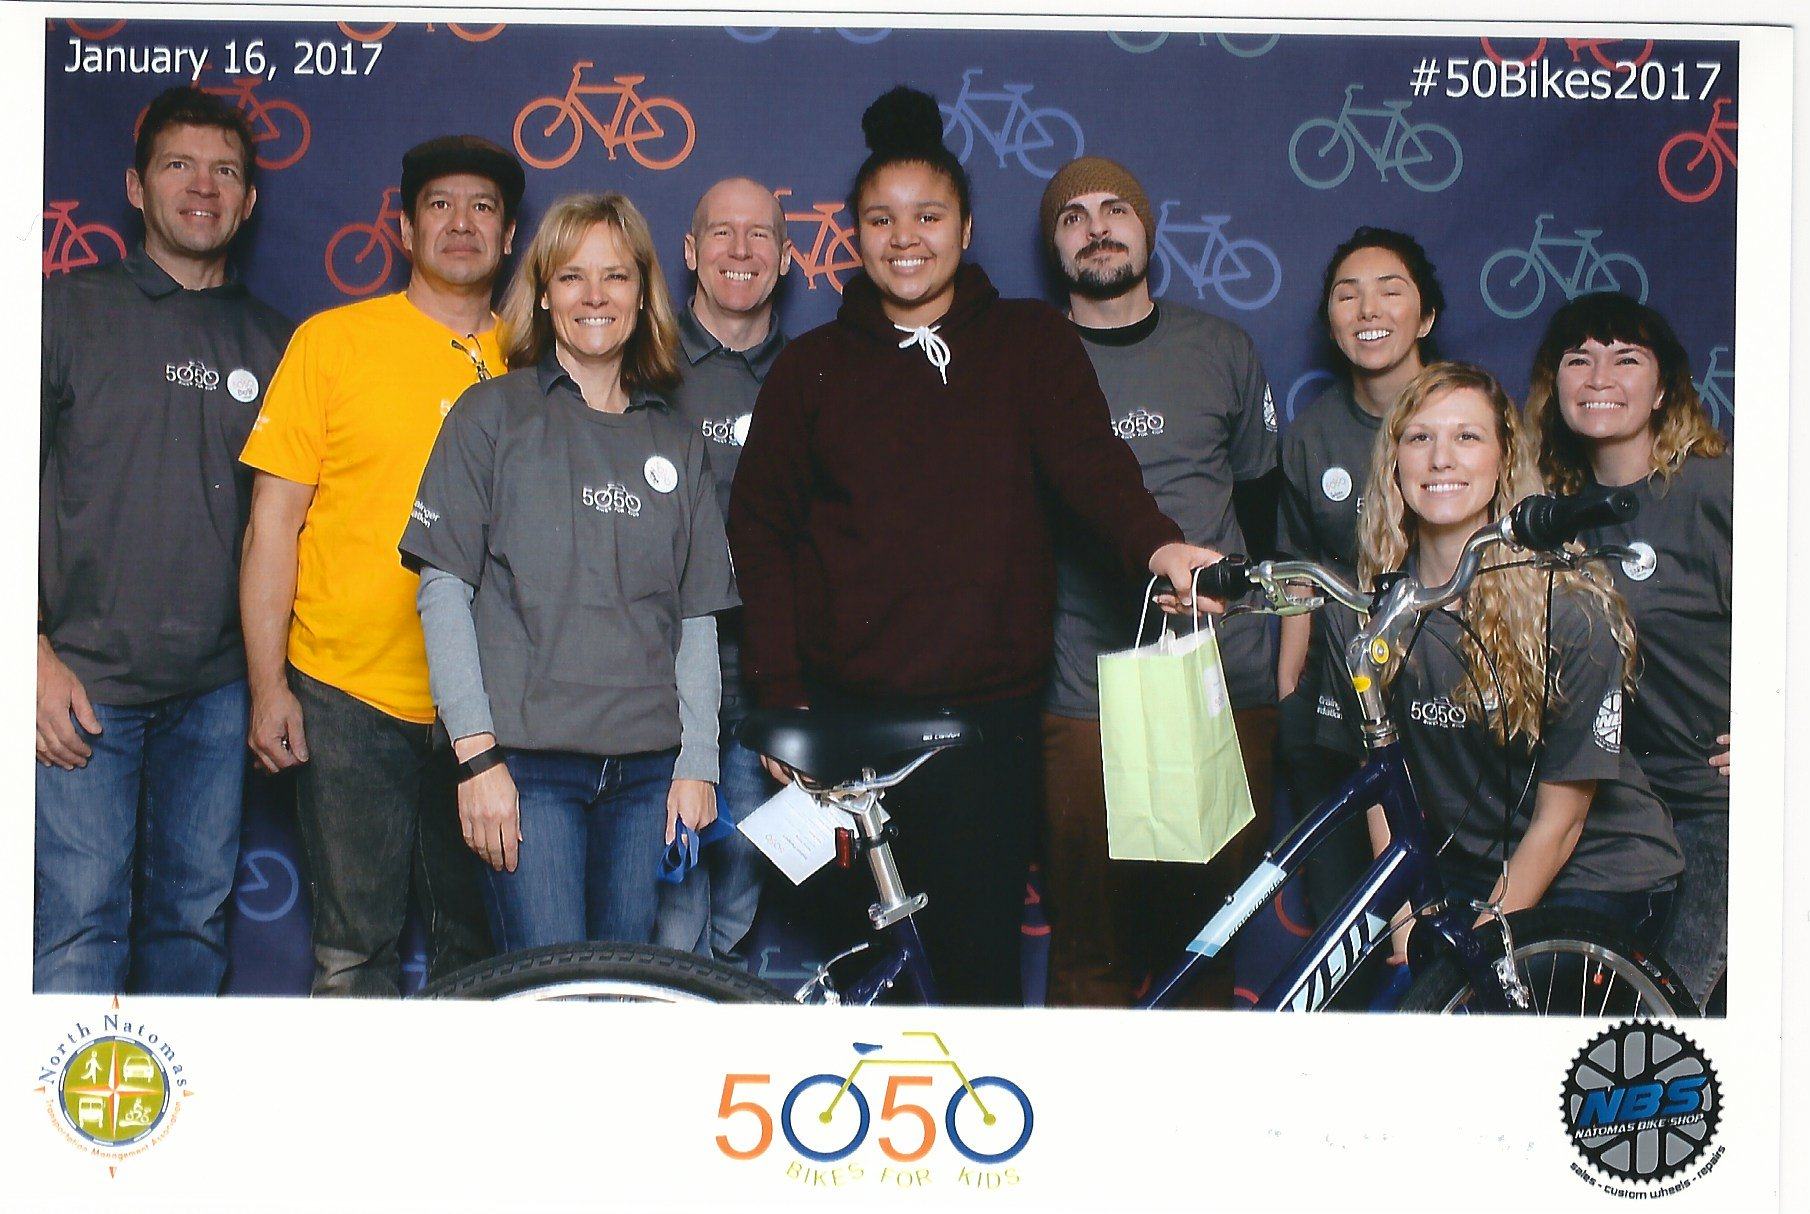 We had a great time volunteering for 50 Bikes for 50 Kids with @NorthNatomasTMA today! #50Bikes2017 https://t.co/EXGdFD5fDw